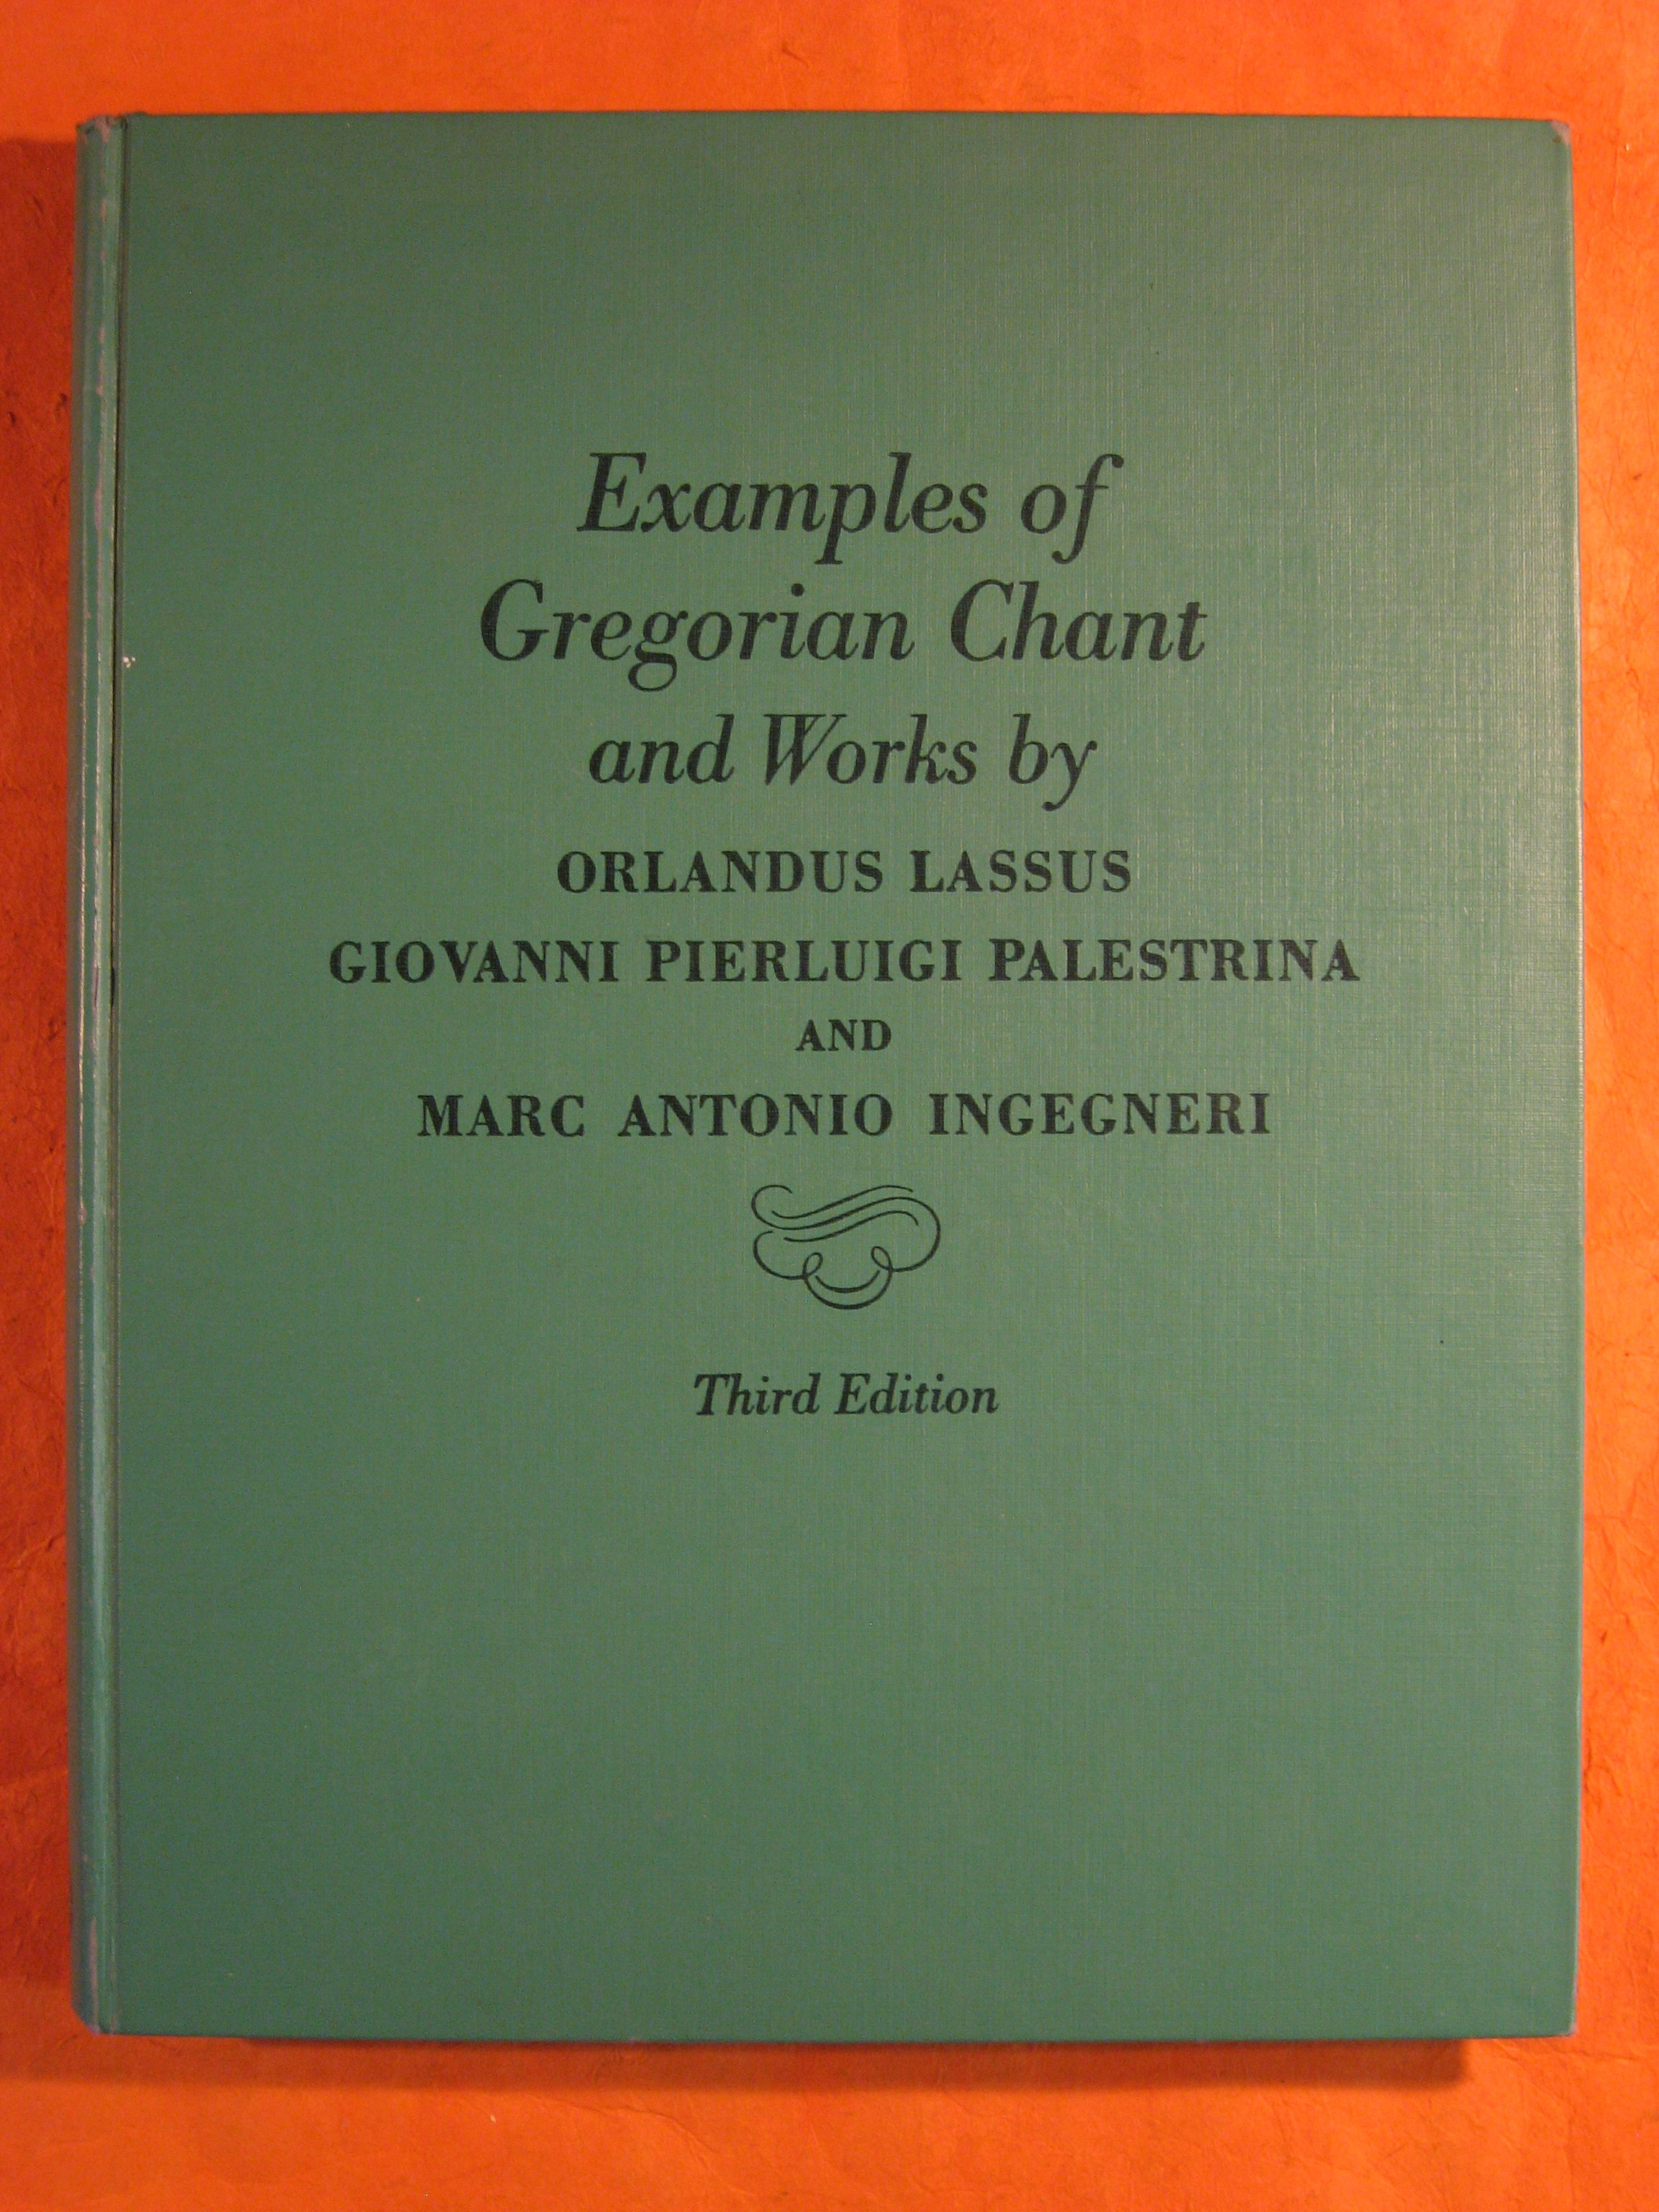 Examples of Gregorian Chant and Works By Orlandus Lassus, Giovanni Pierluigi Palestrina and Marc Antonio Ingegneri for Use in Classes of Counterpoint